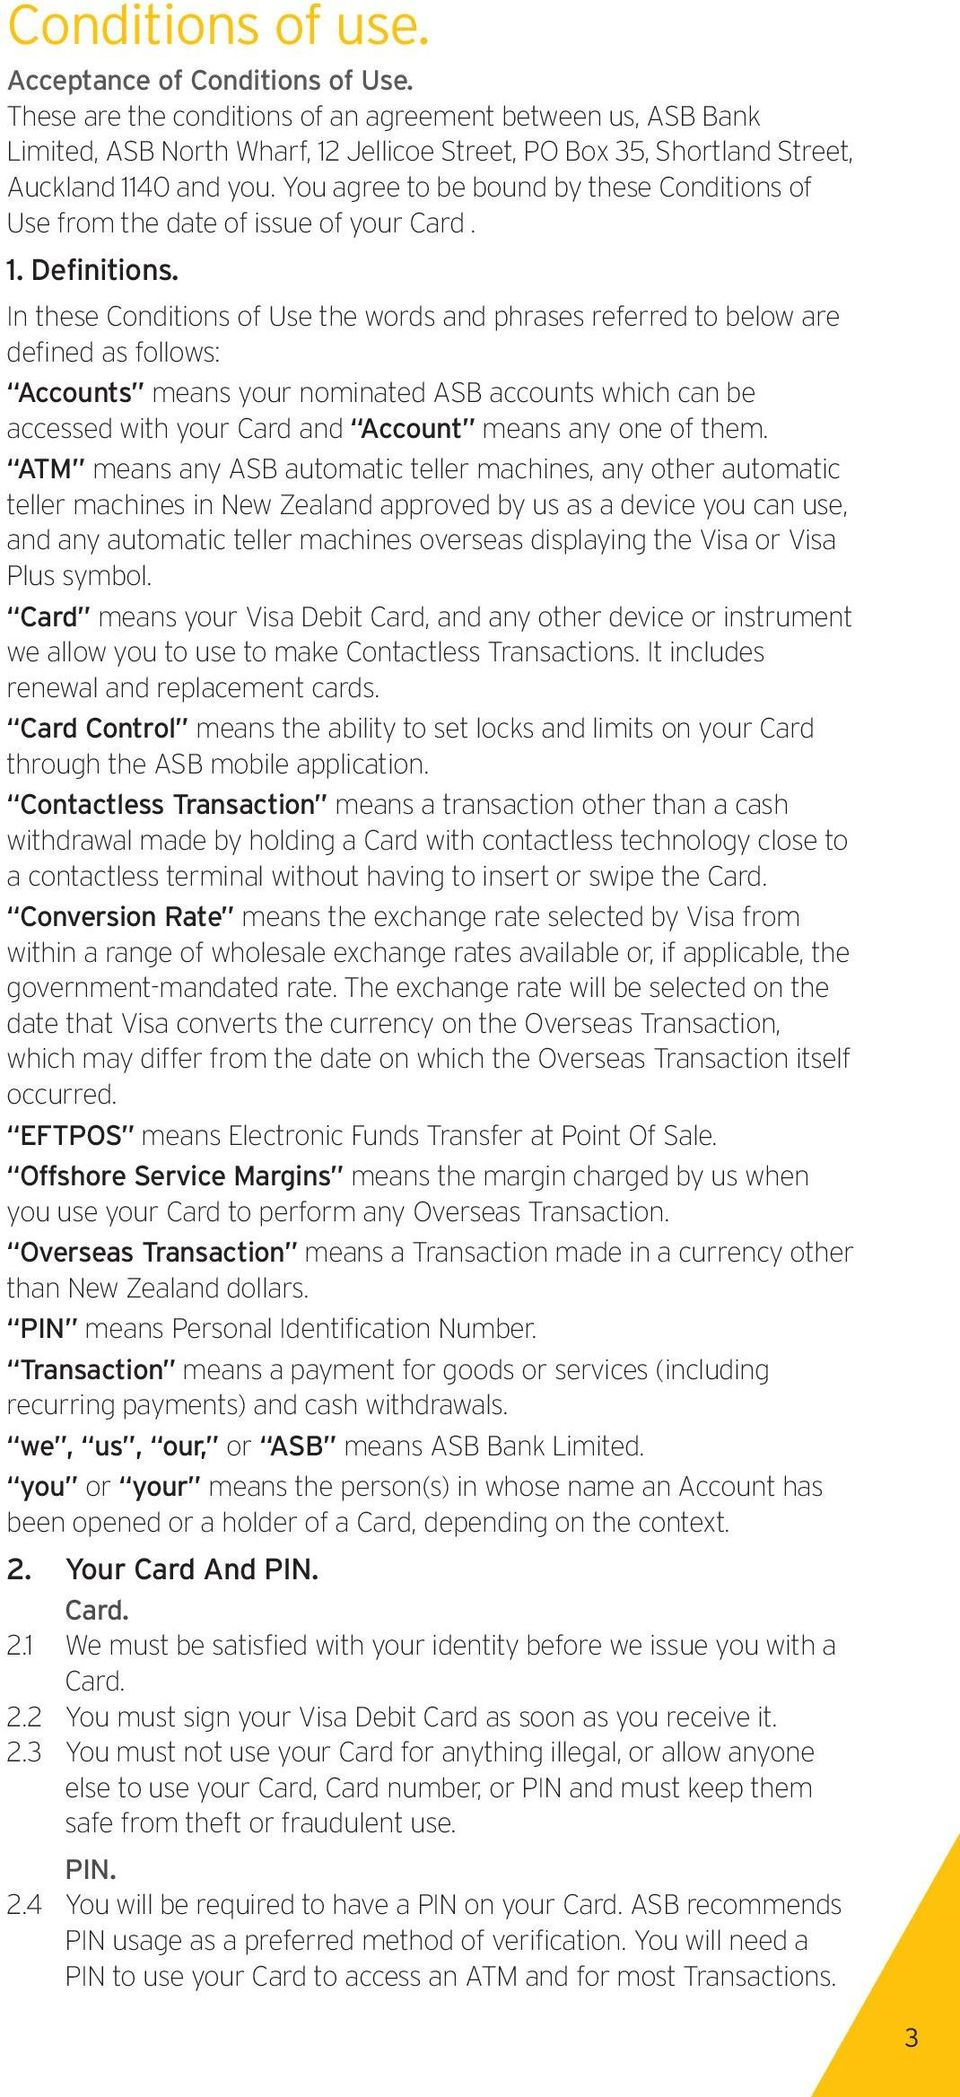 You agree to be bound by these Conditions of Use from the date of issue of your Card. 1. Definitions.